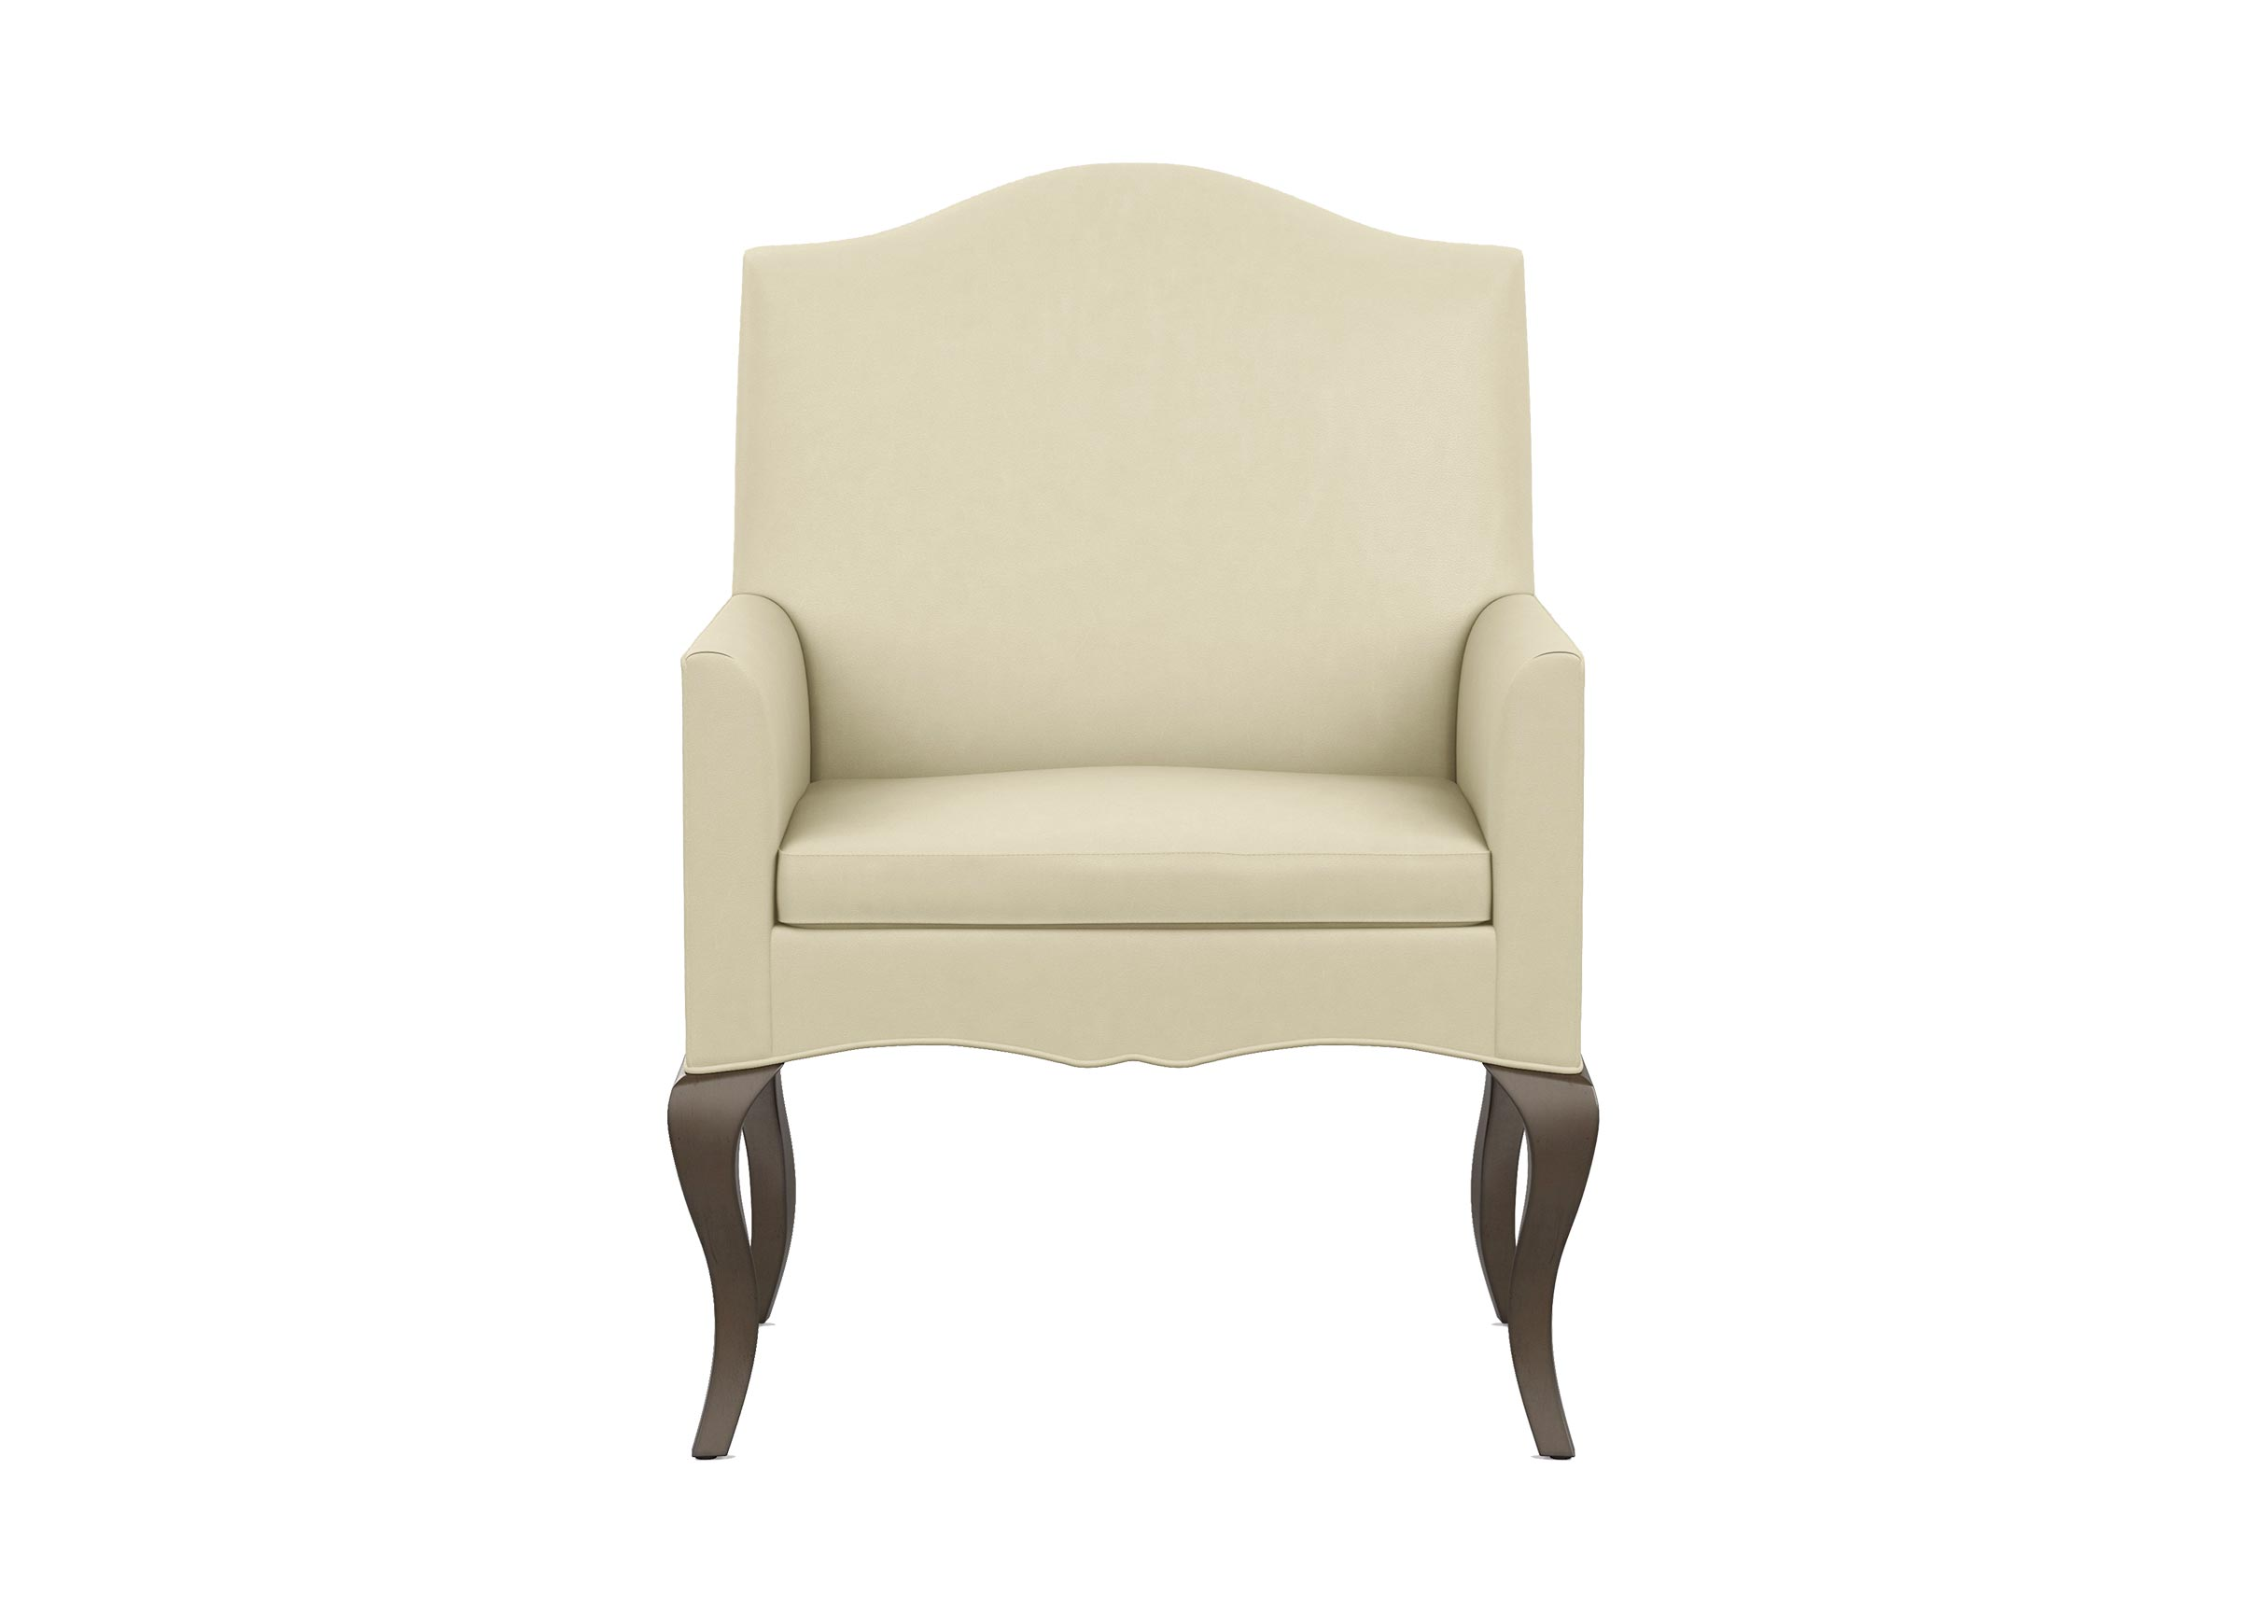 ethan allen leather chairs your chair covers inc coupon code barden and recliners